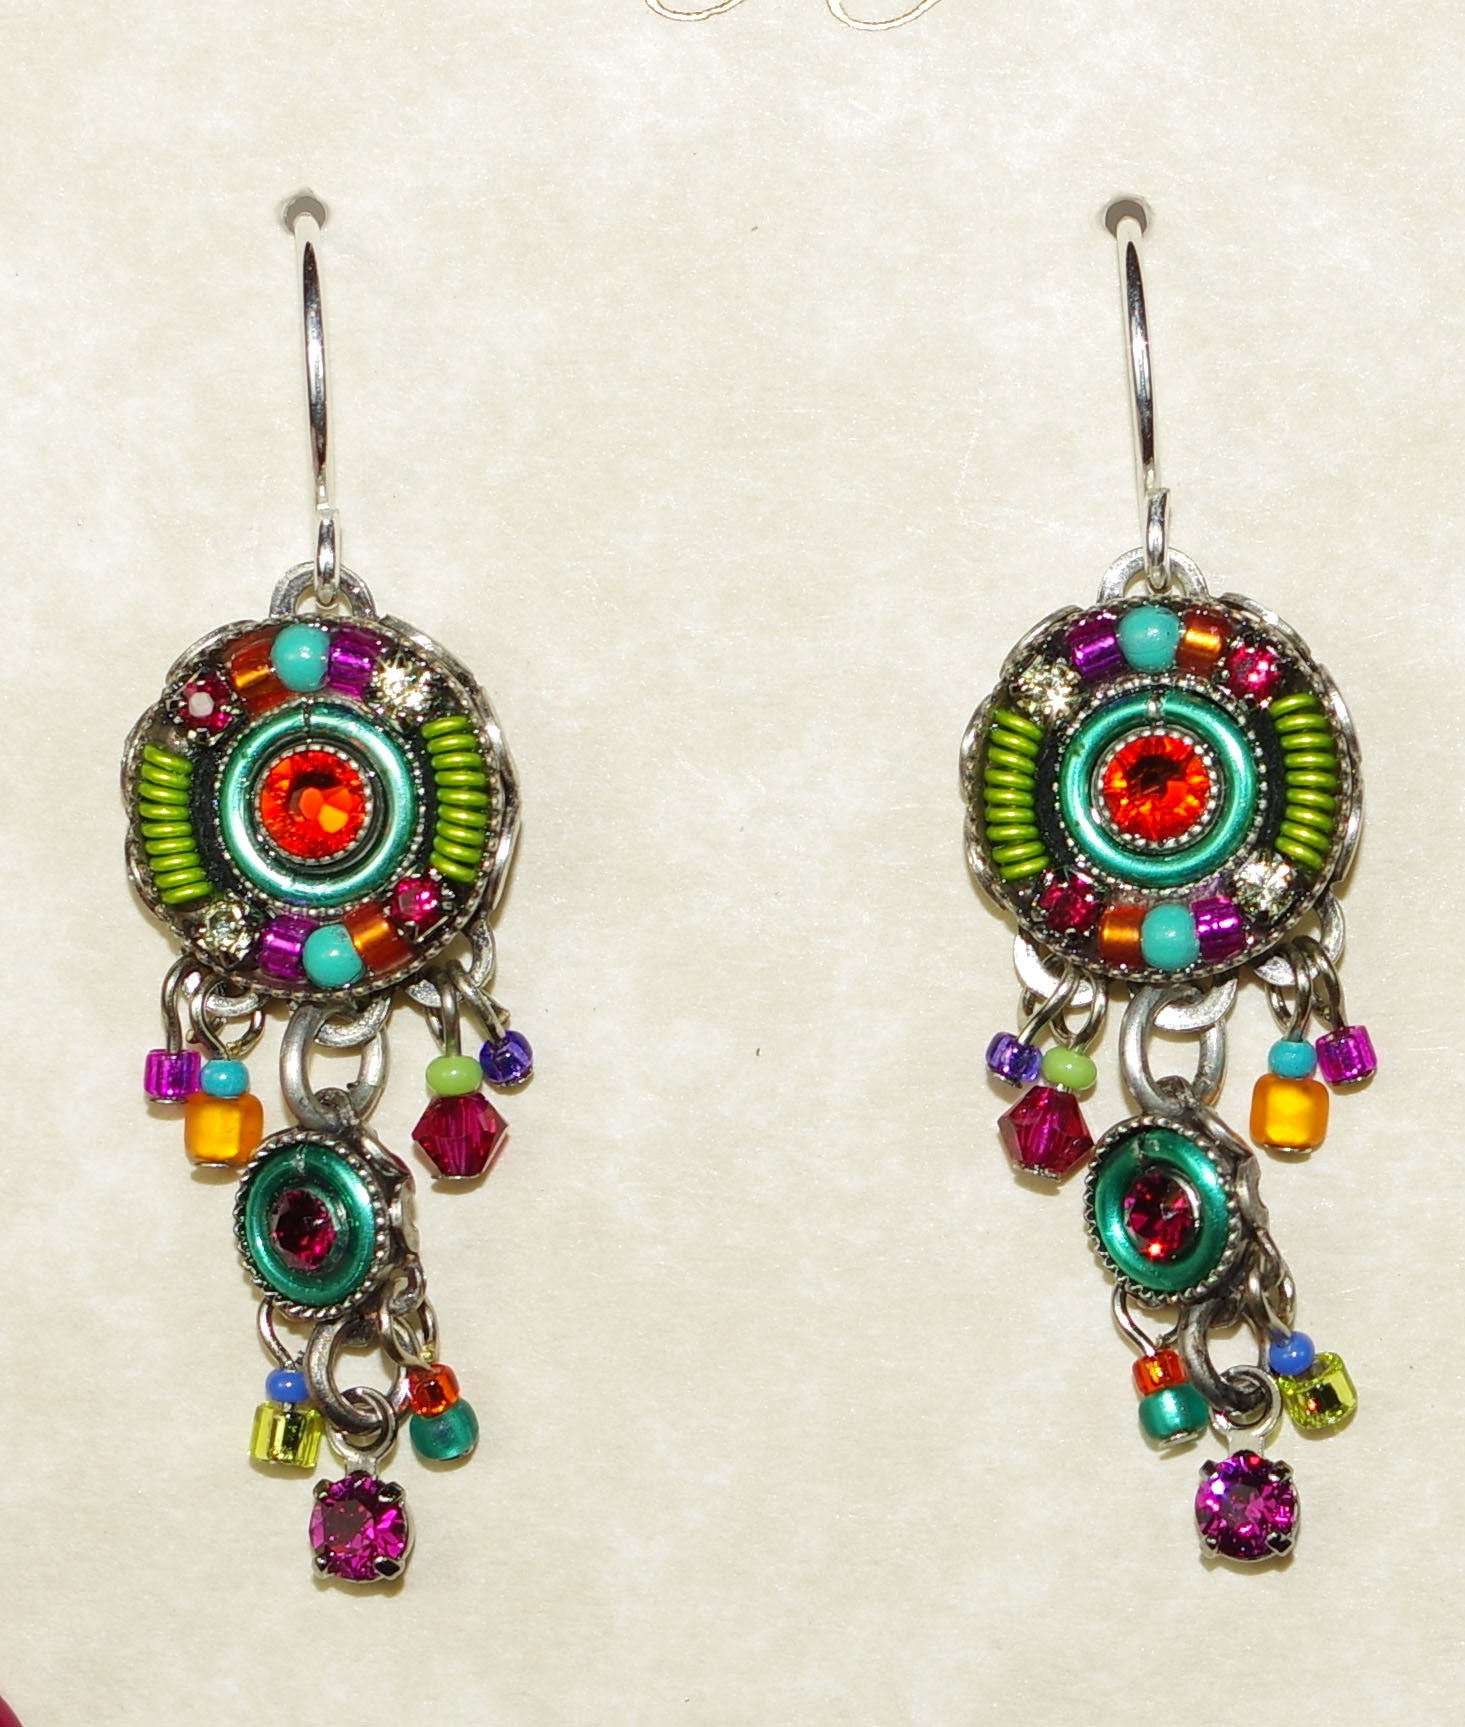 8a891a43aee80 FIREFLY EARRINGS TWO TIER MC: multi color stones in 1